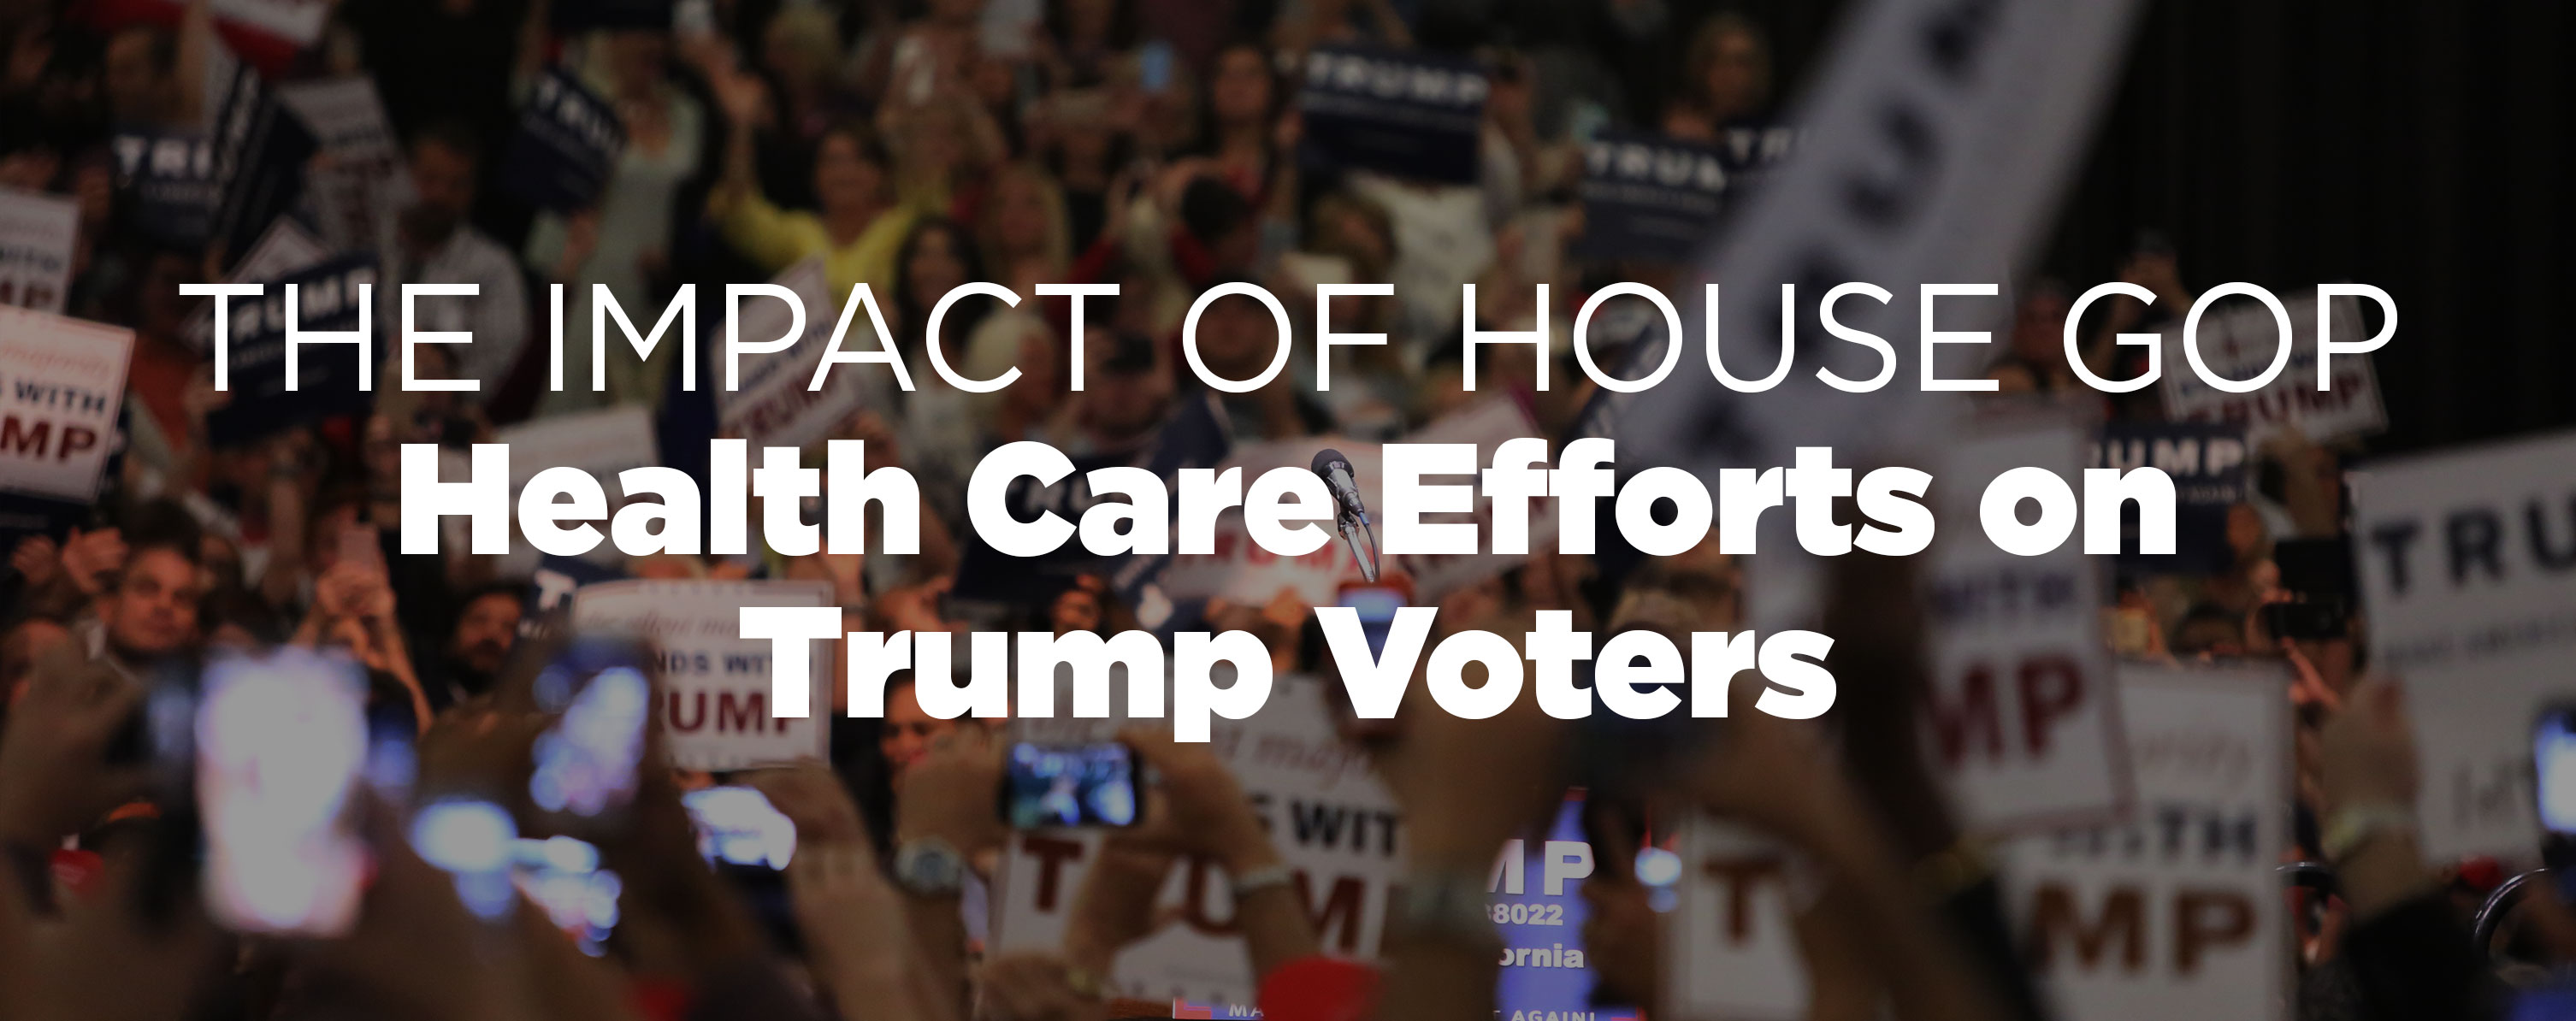 The Impact of the House GOP Health Care Bill on Trump Voters